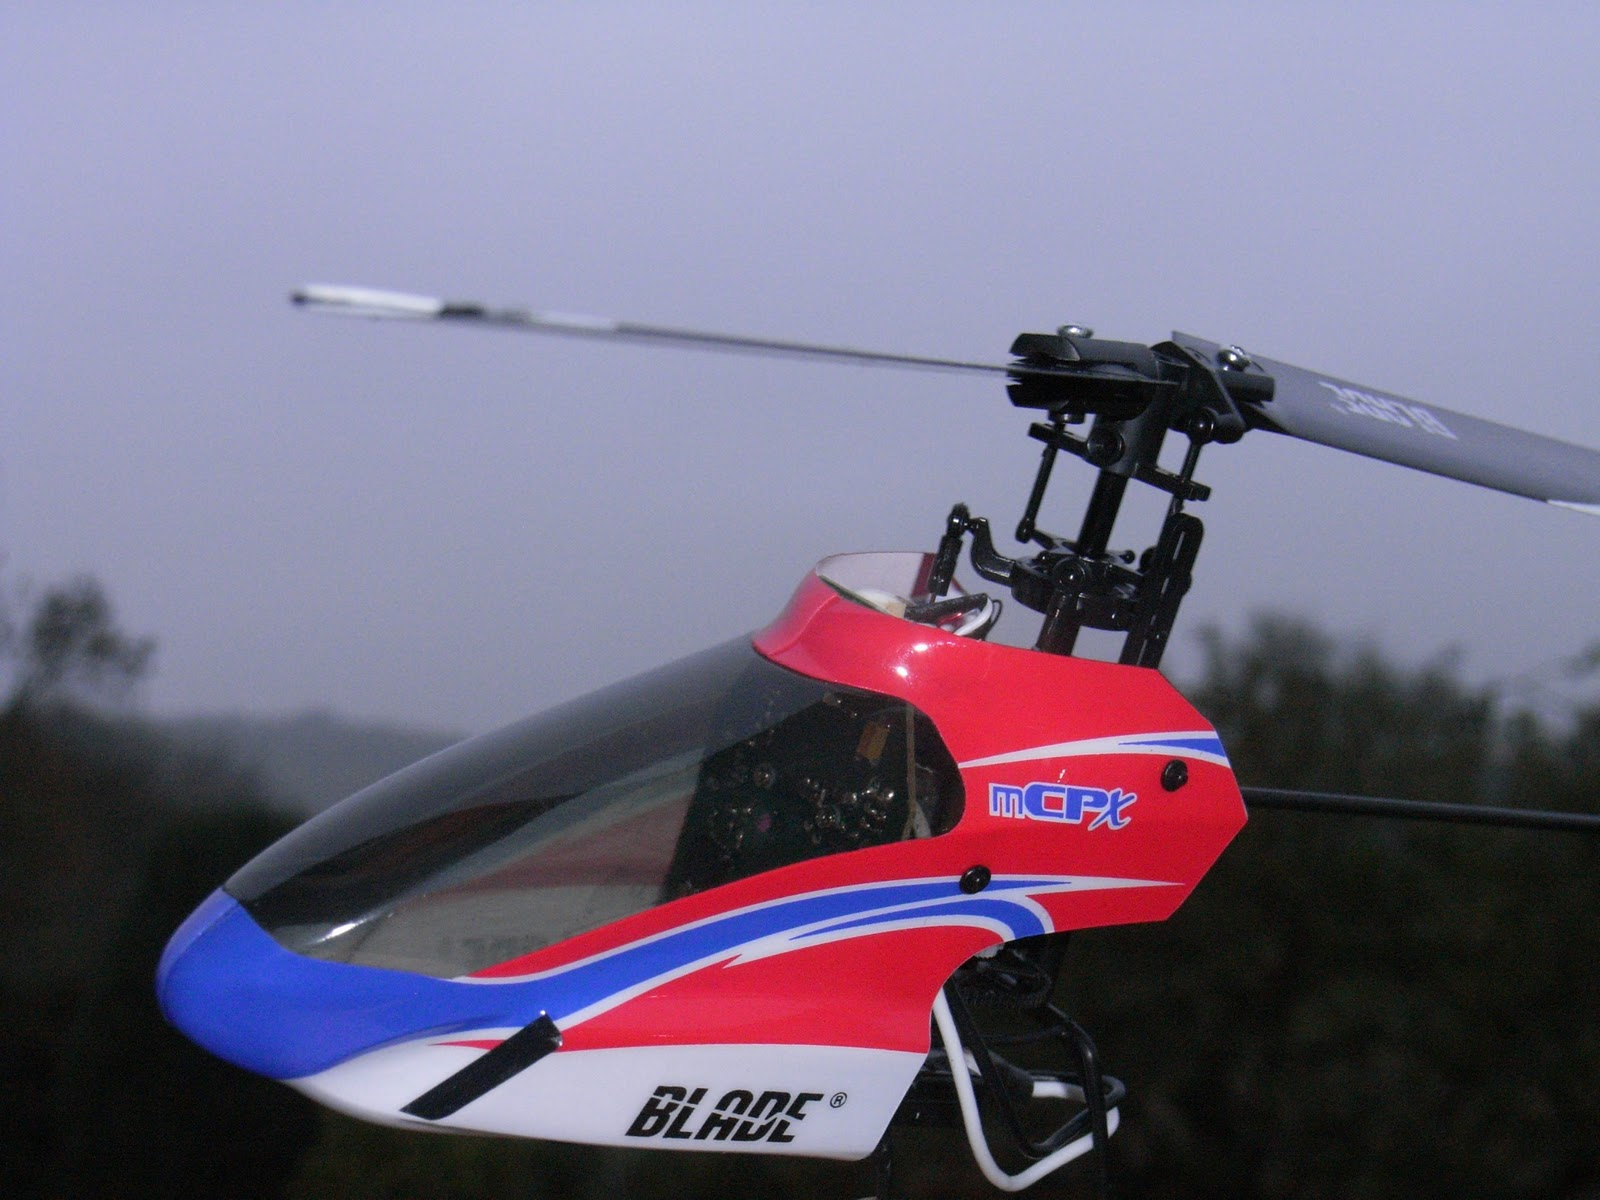 RC Helicopter World: The mCPx Challenge - Not For Beginners?